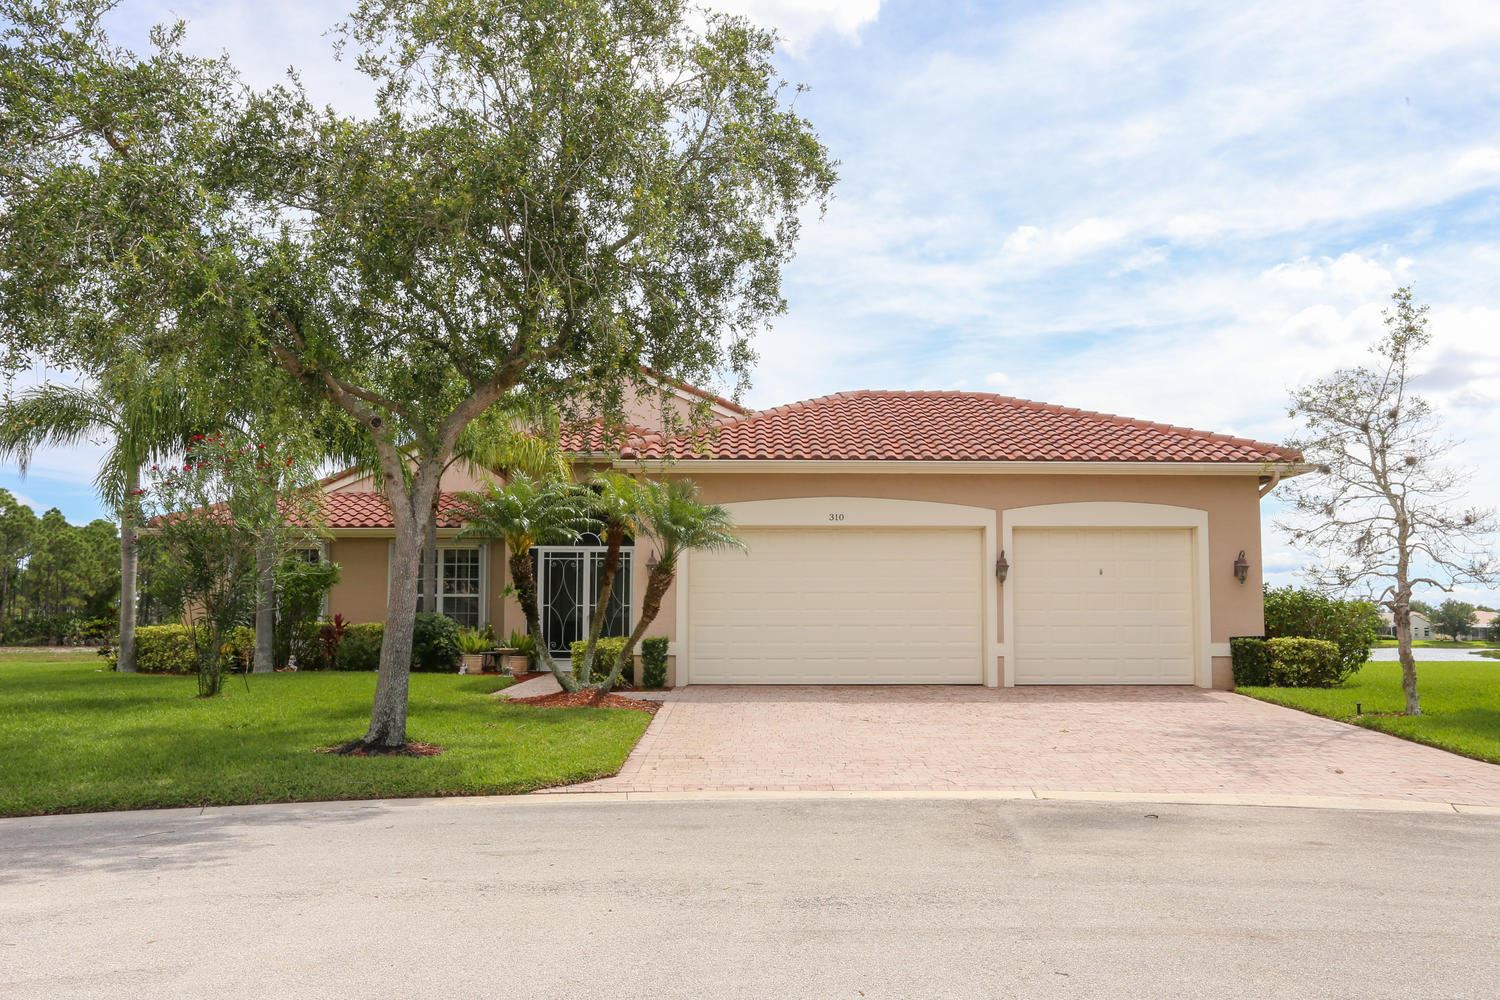 Photo of 310 NW Bayside Court, Port Saint Lucie, FL 34986 (MLS # RX-10619103)